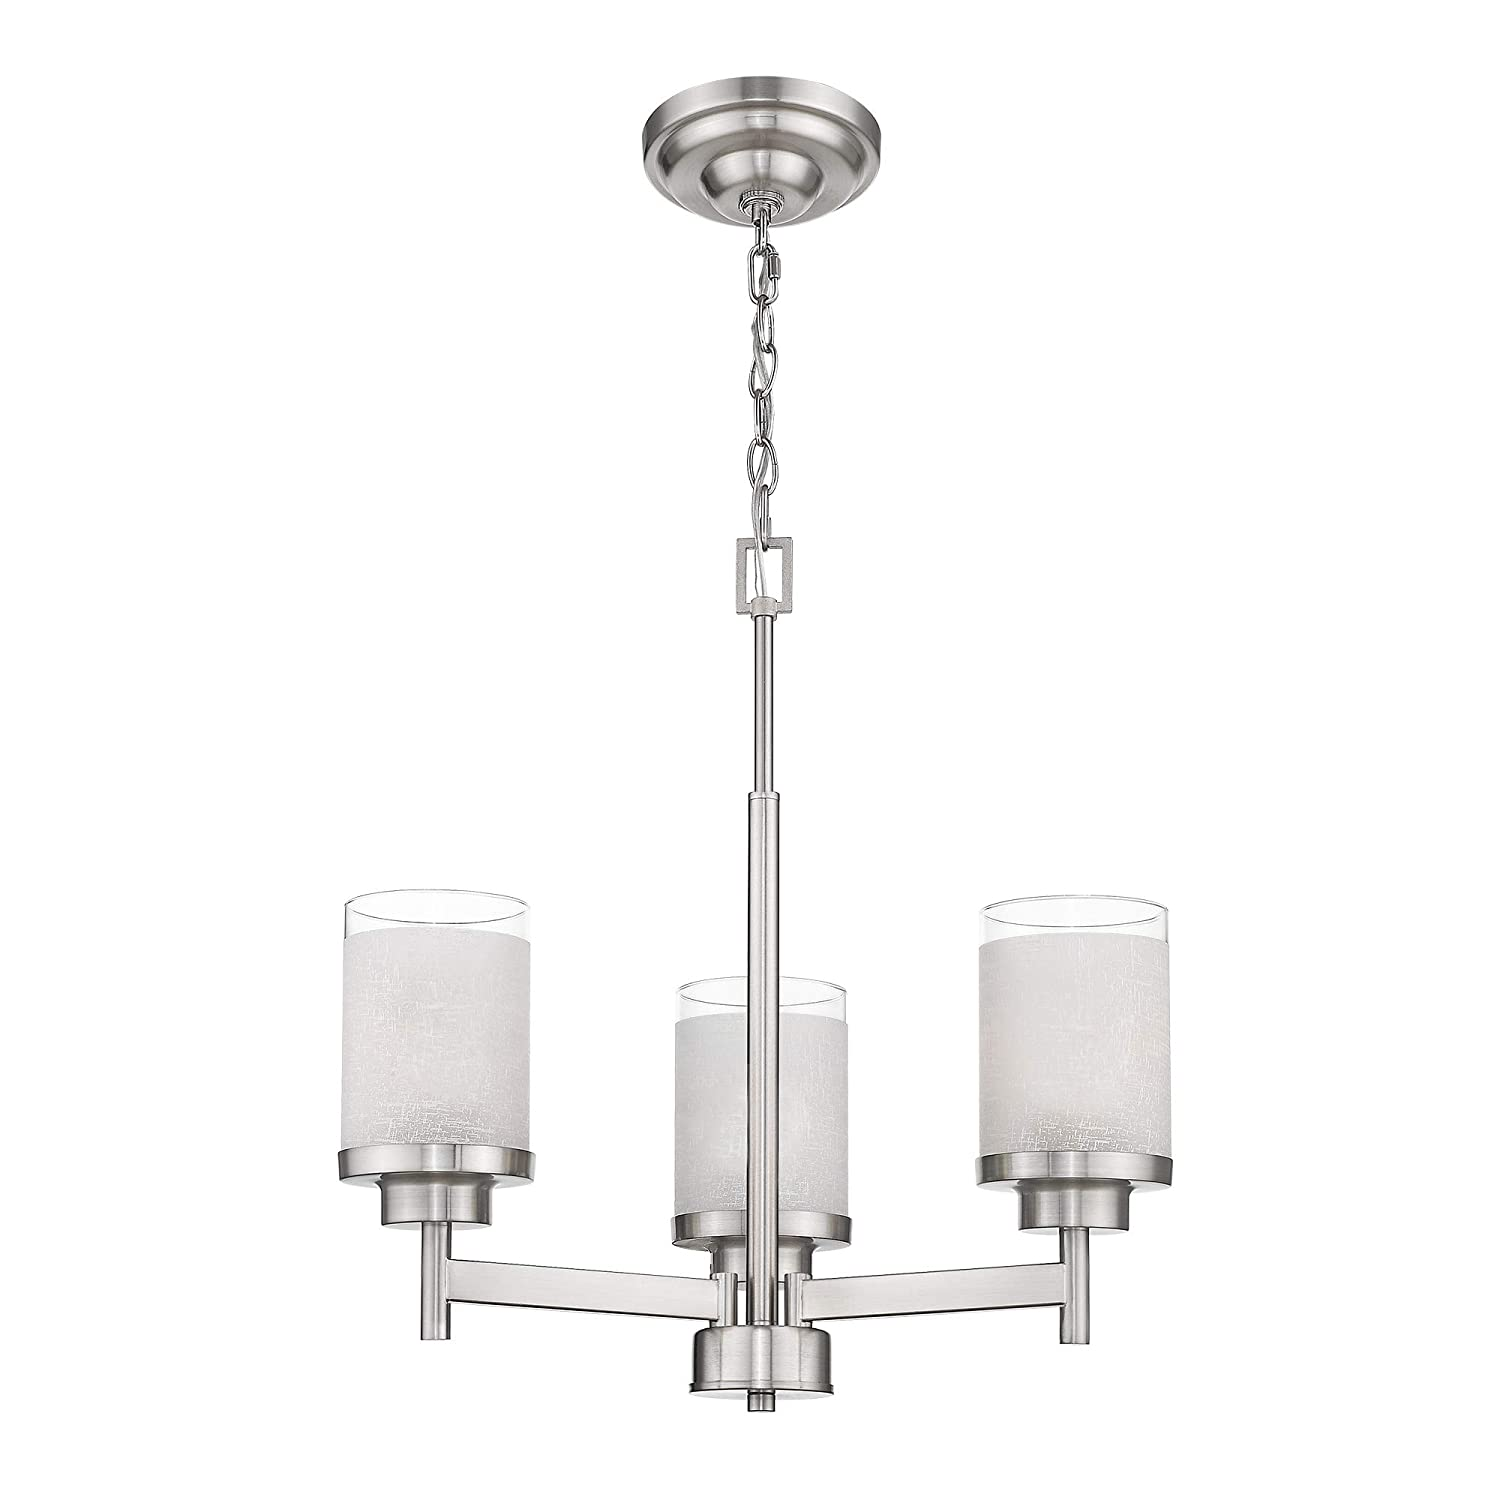 Jazava 3-Light Island Pendants, Modern Kitchen Chandelier Light, Industrial Hanging Light Fixture for Farmhouse, Brushed Nickel with White Linen Frosted Glass Shades for Farmhouse, Dinning Room